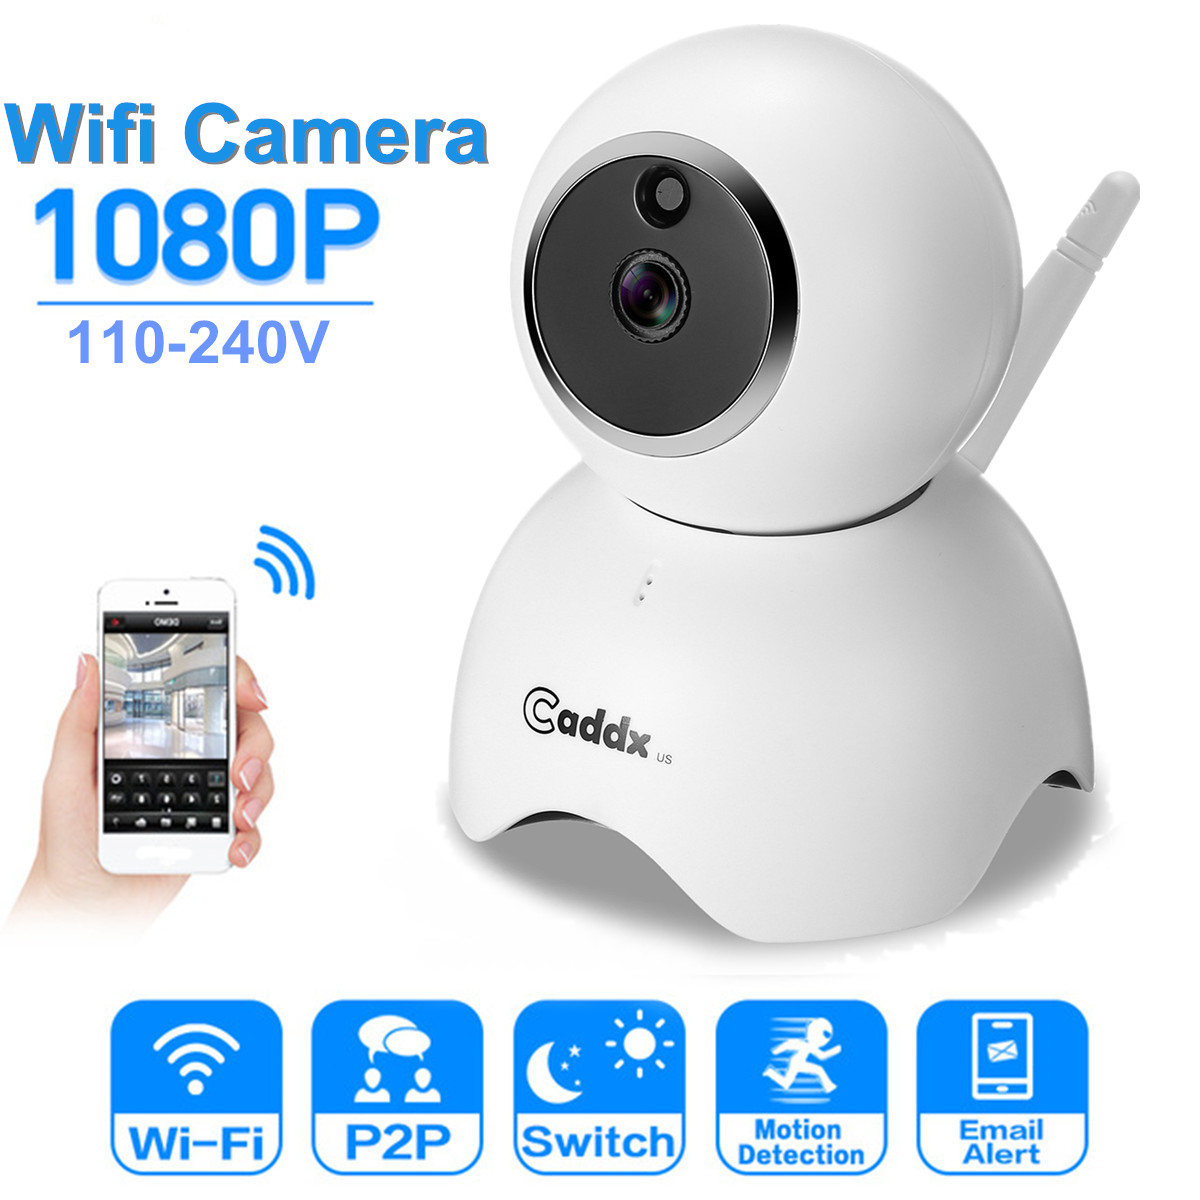 Wireless 1080P HD Wifi IP Camera CCTV Security Night Vision Surveillance Monitor H.264 Noise Suppression Air-Join Multi-user кальсоны user кальсоны